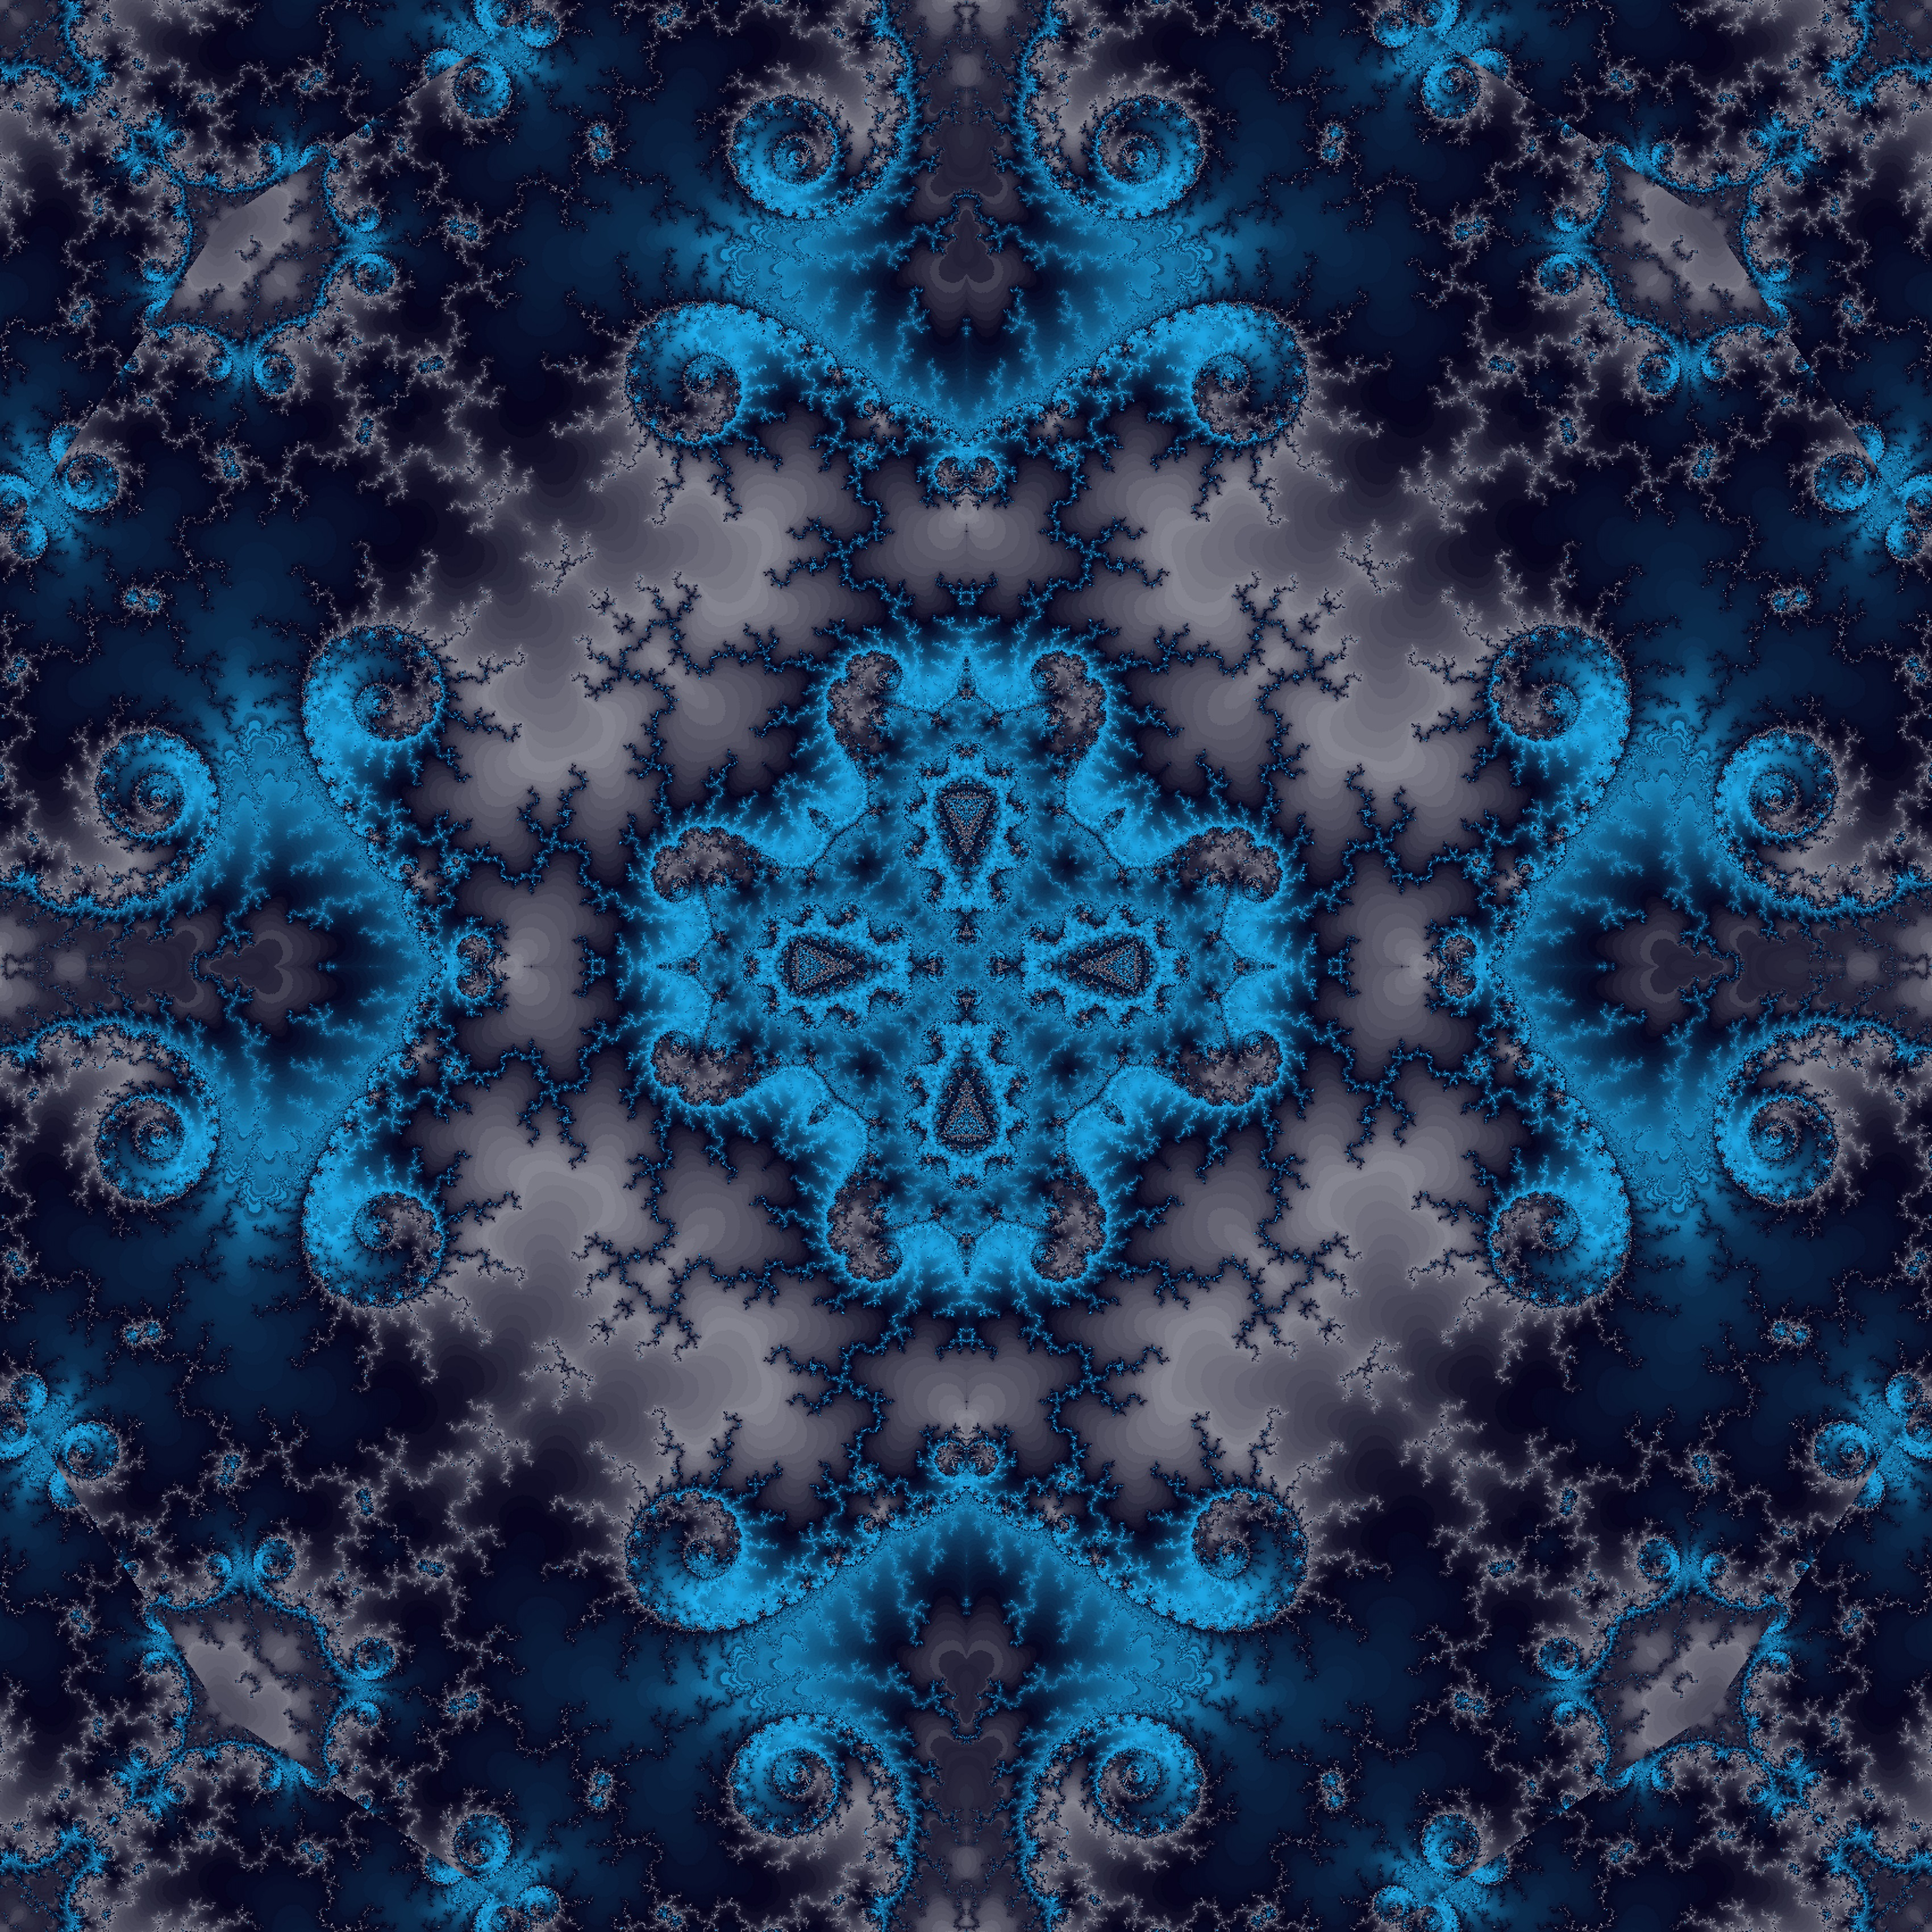 117952 download wallpaper Abstract, Fractal, Kaleidoscope, Symmetry, Digital screensavers and pictures for free